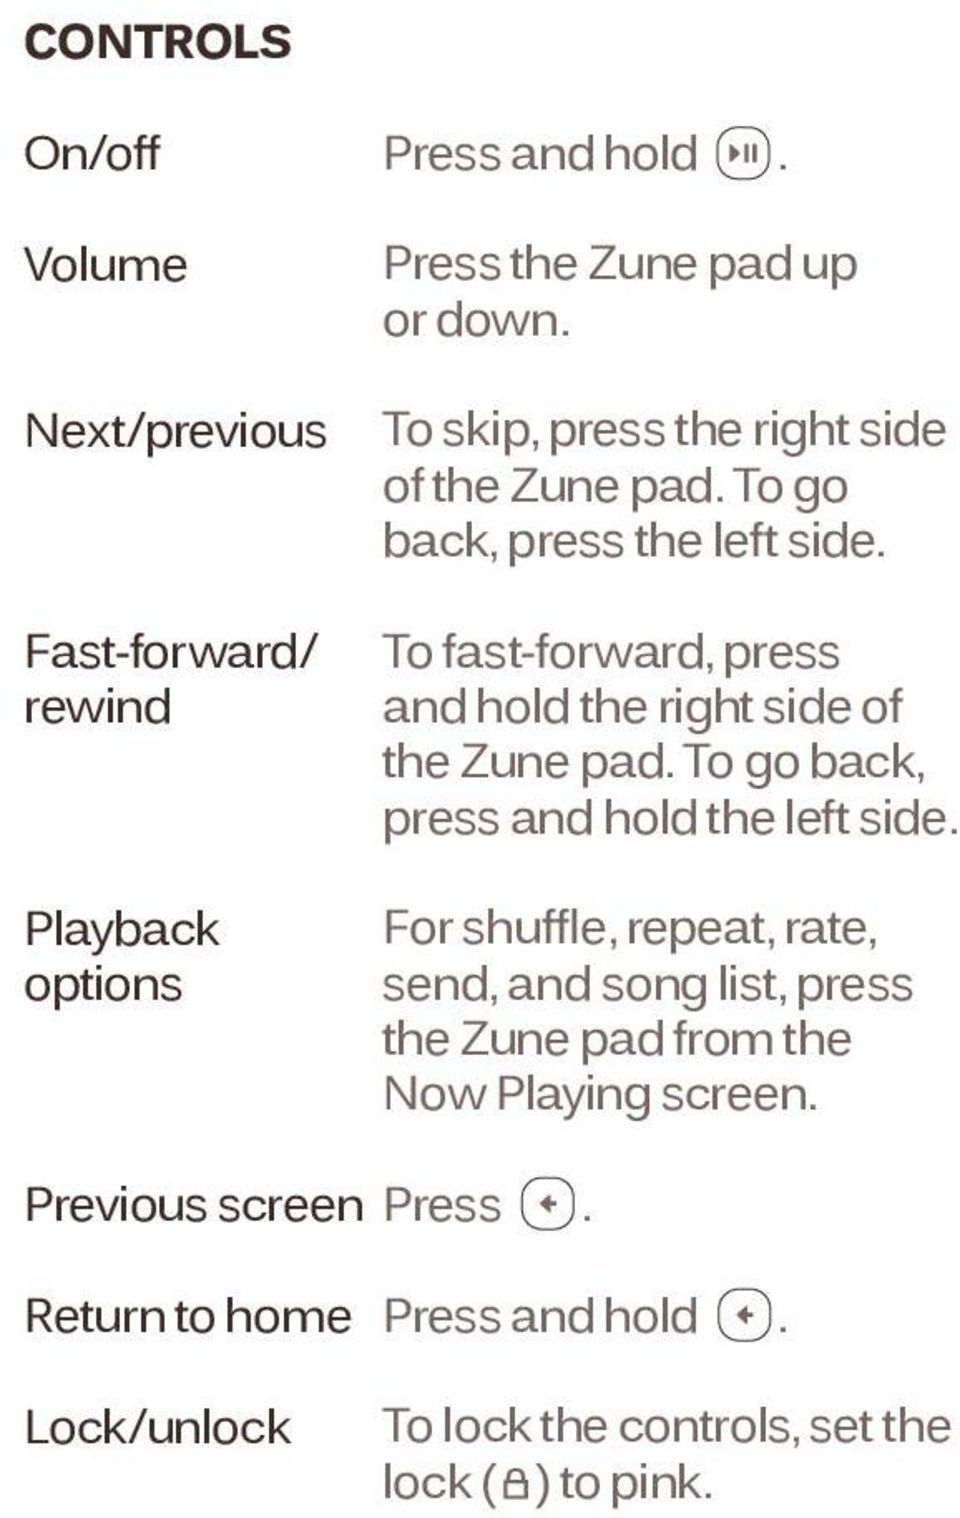 To fast-forward, press and hold the right side of the Zune pad. To go back, press and hold the left side.